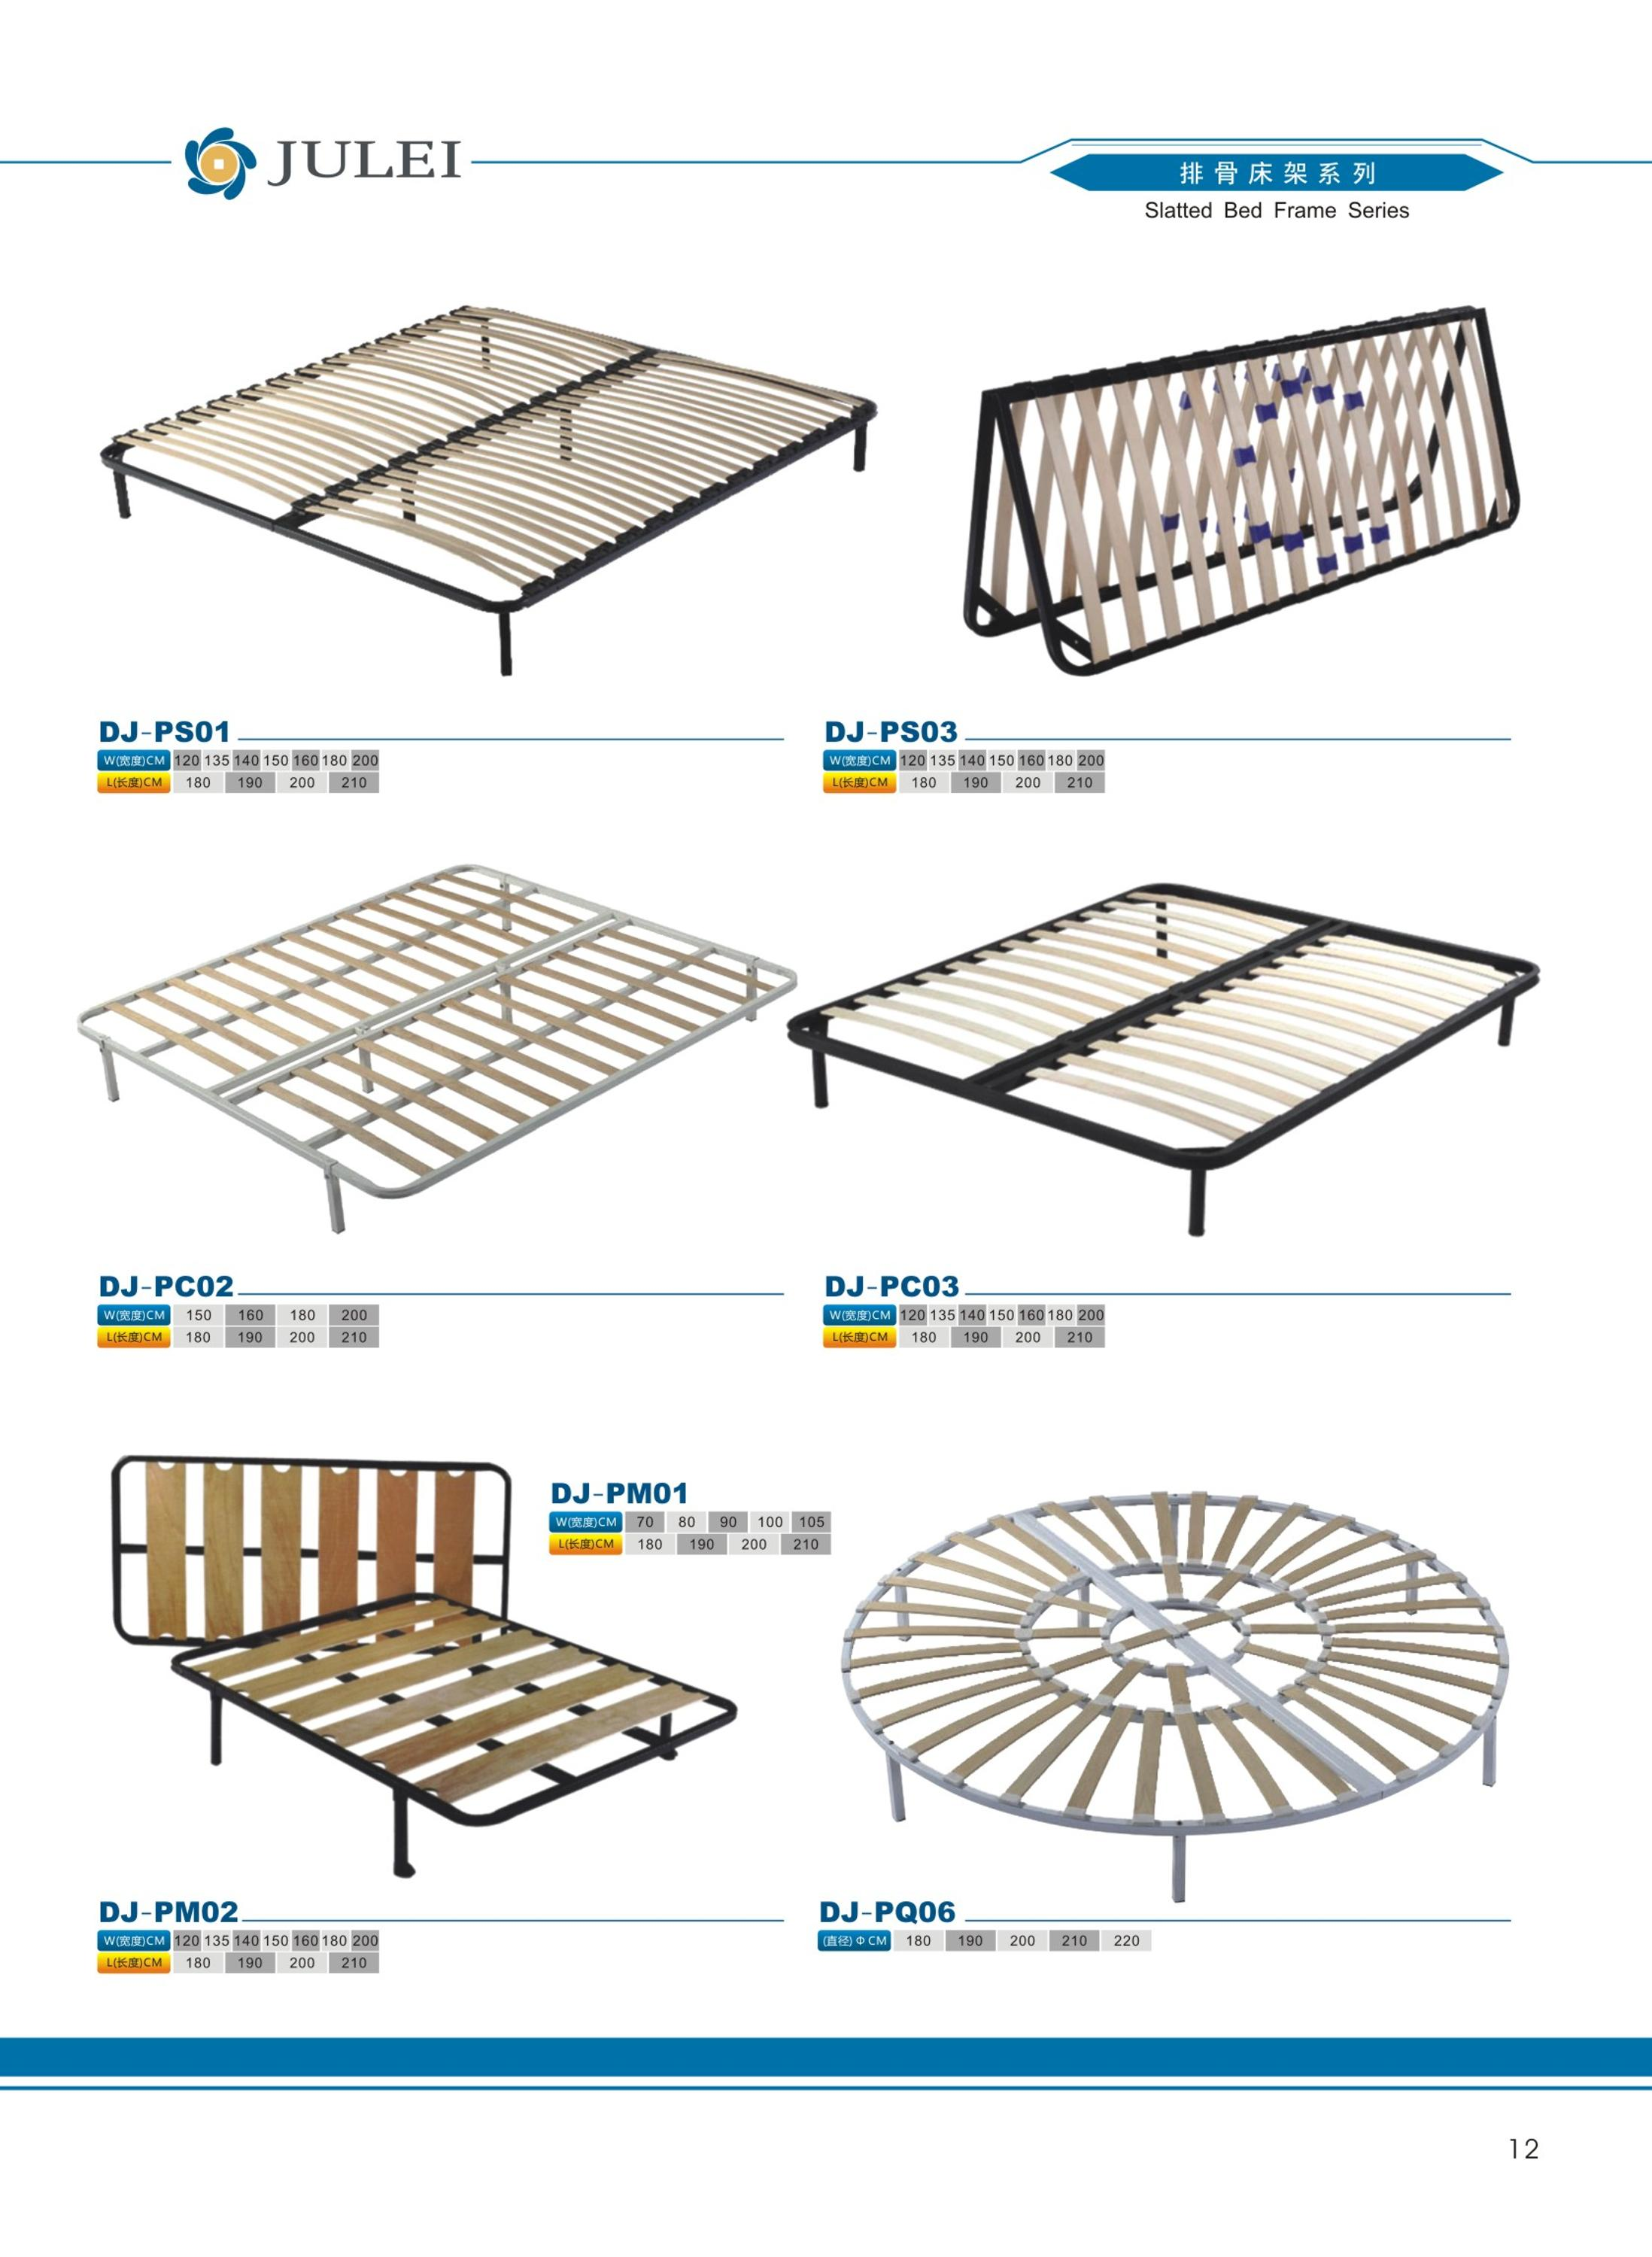 new design girlish platform folding round metal bed frame DJ-PQ06